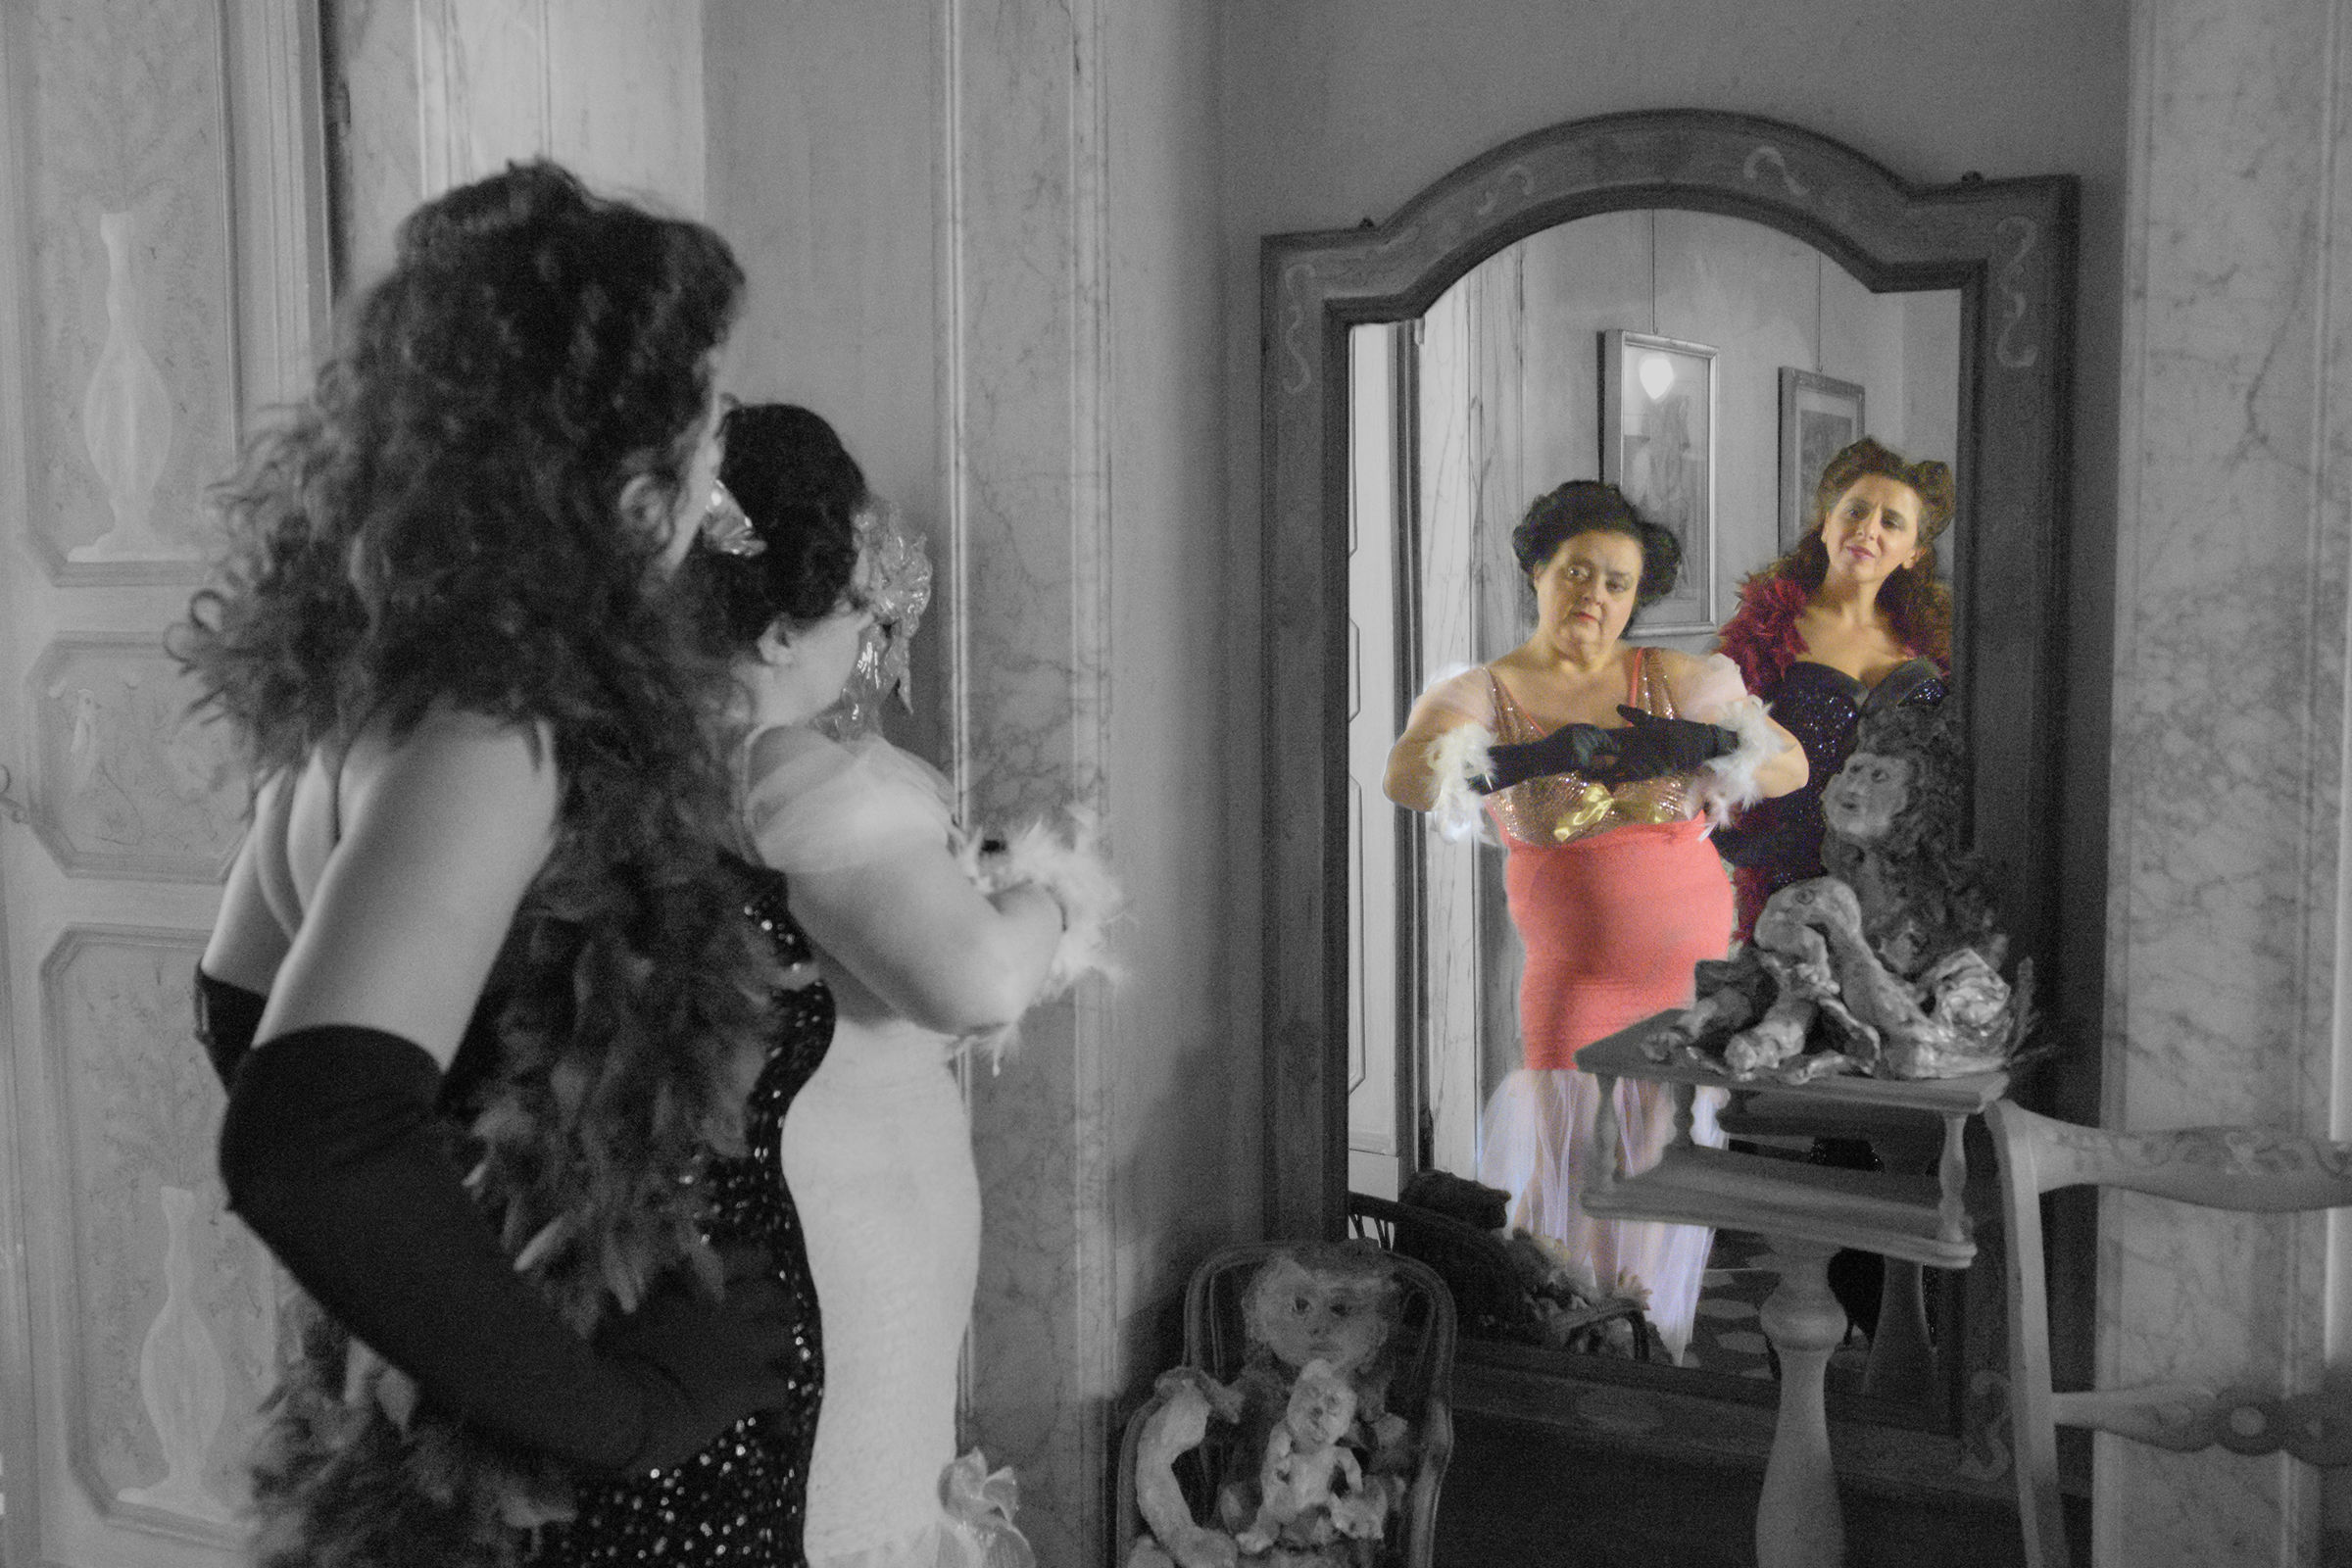 Mirror on the wall...